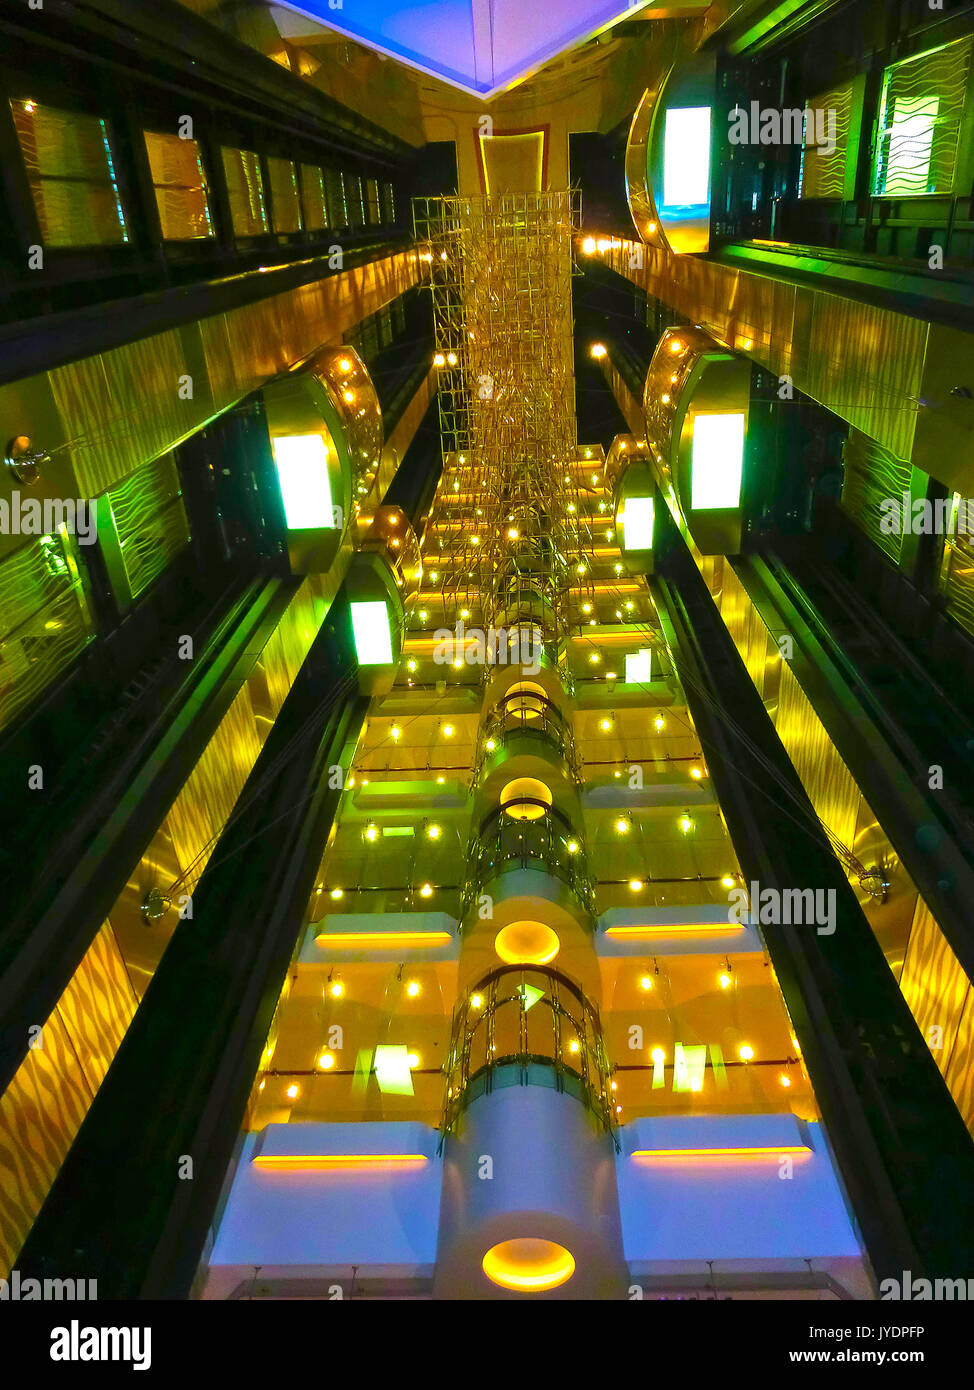 Barcelona Spain September 06 2015 The Details Of Interior Of Stock Photo Alamy